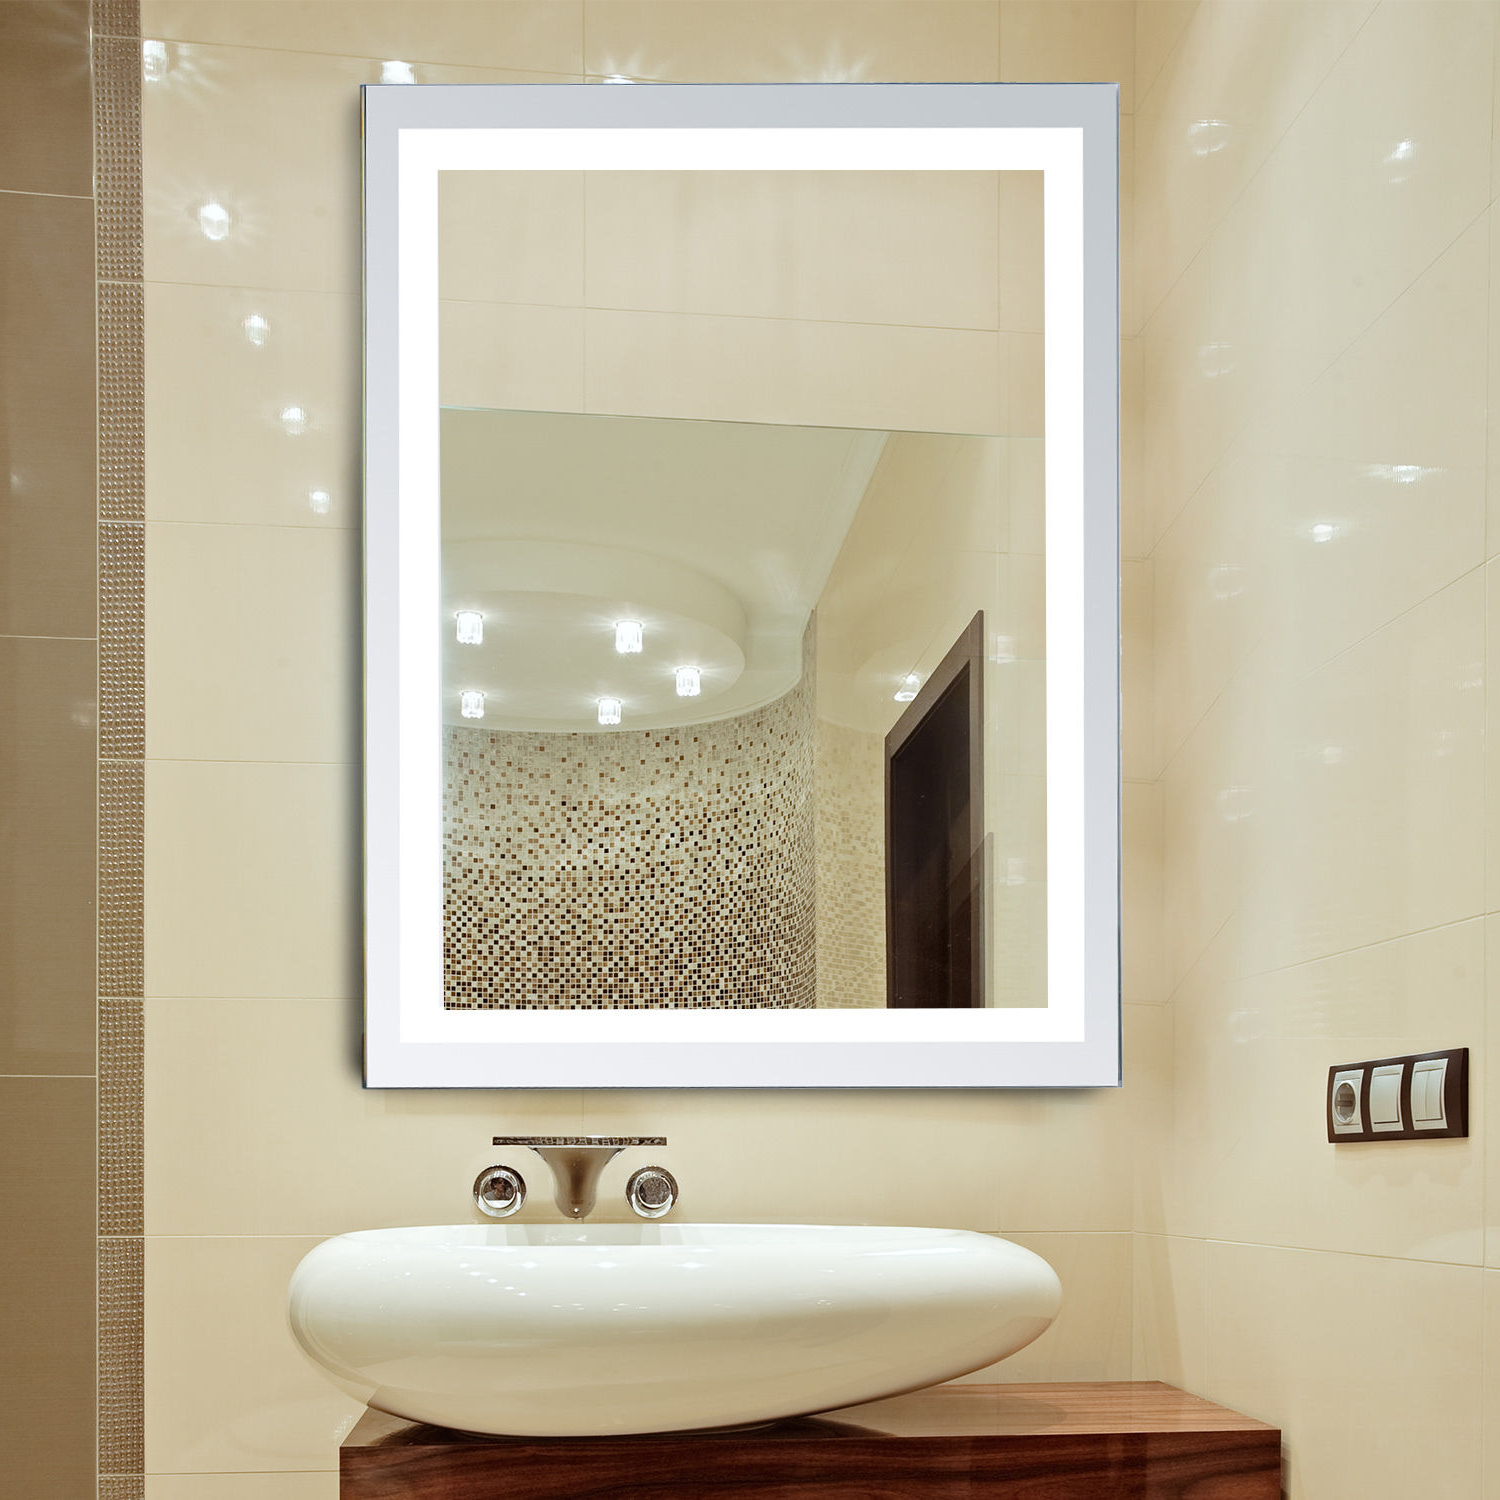 Preferred Light Wall Mirrors With Regard To Details About Led Illuminated Bathroom Wall Mirrors With Lights Modern Makeup Vanity Mirror (View 8 of 20)